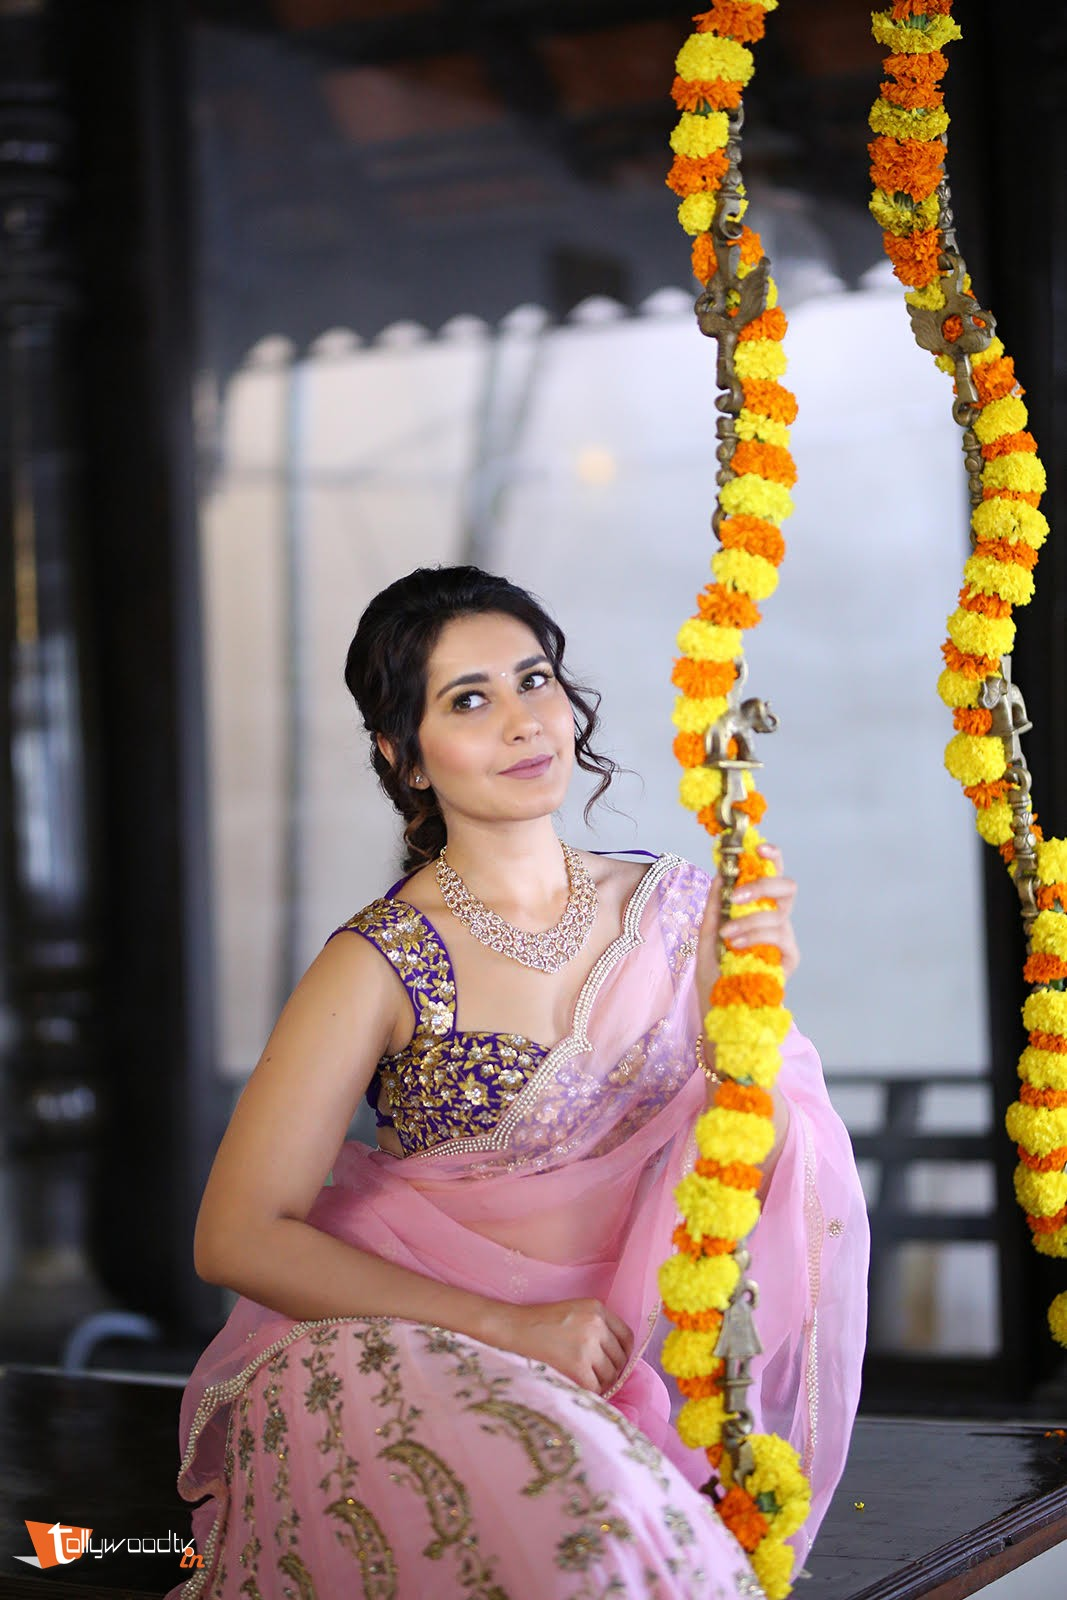 Raashi Khanna Pongal Photoshoot-HQ-Photo-2